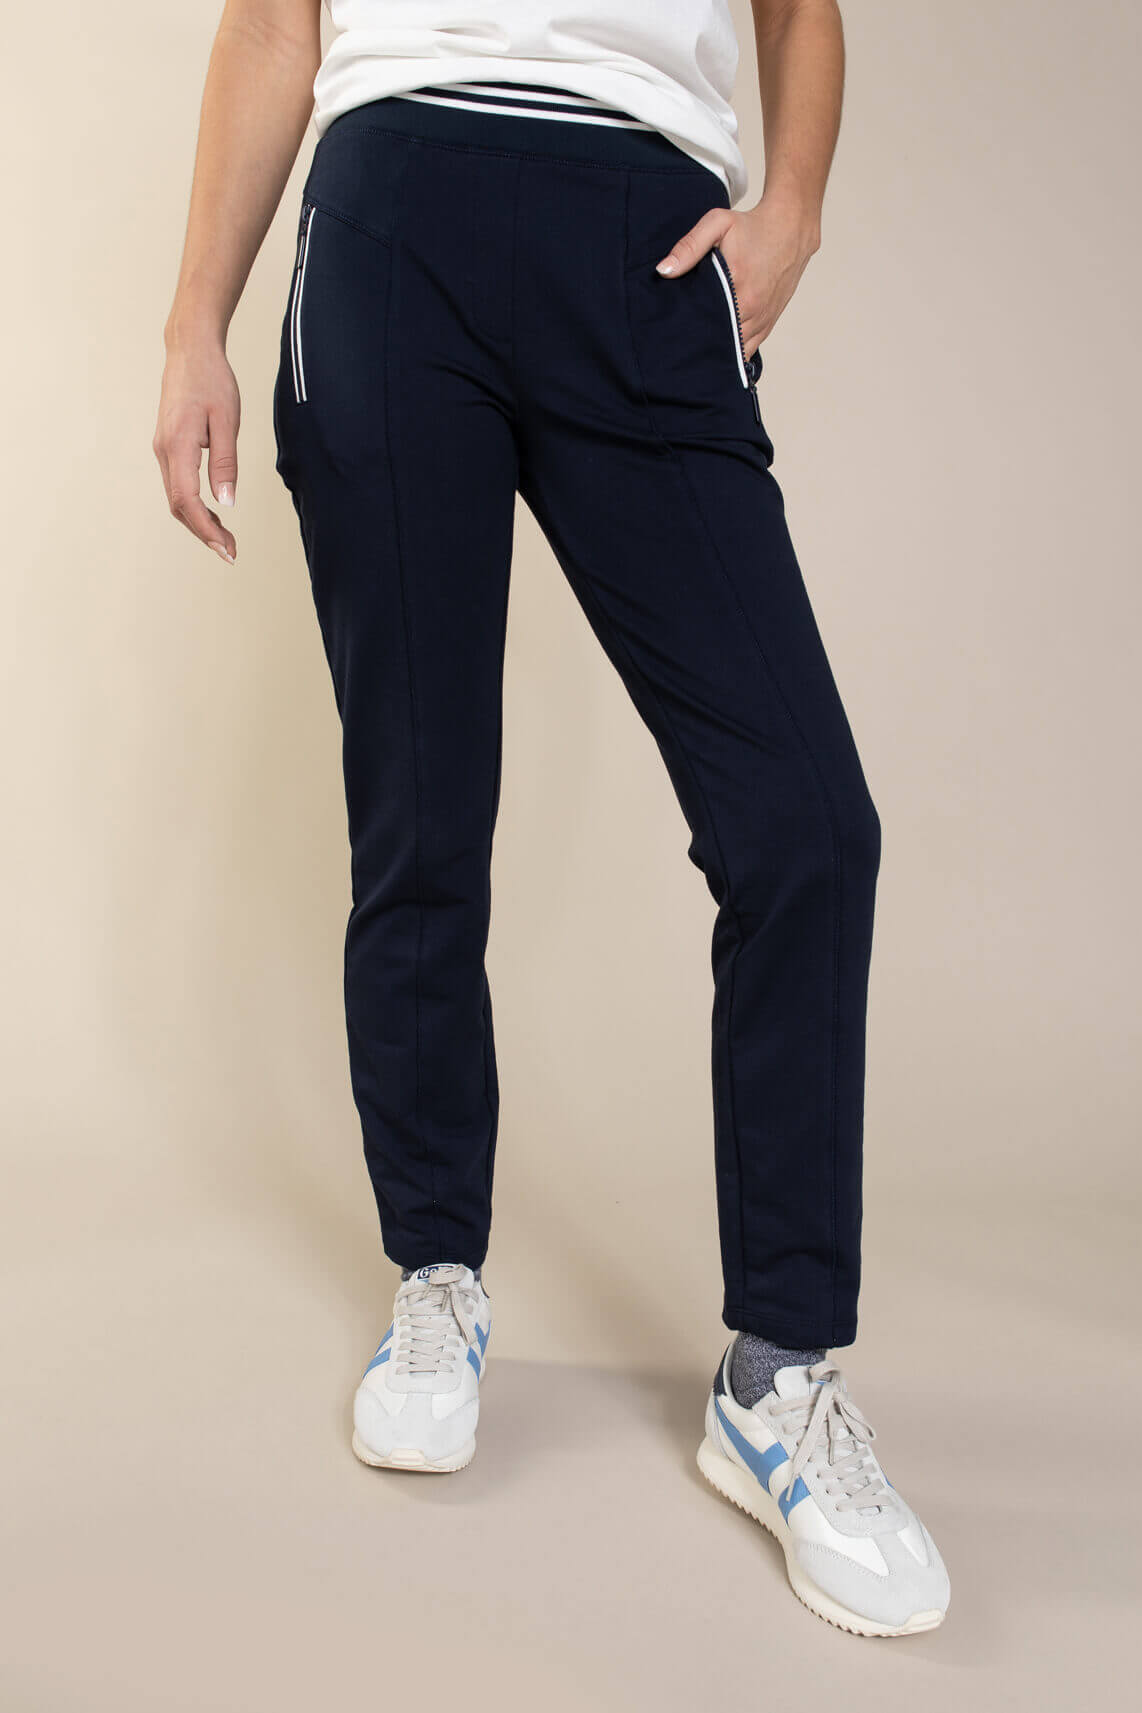 Anna Blue Dames Sweatbroek Blauw